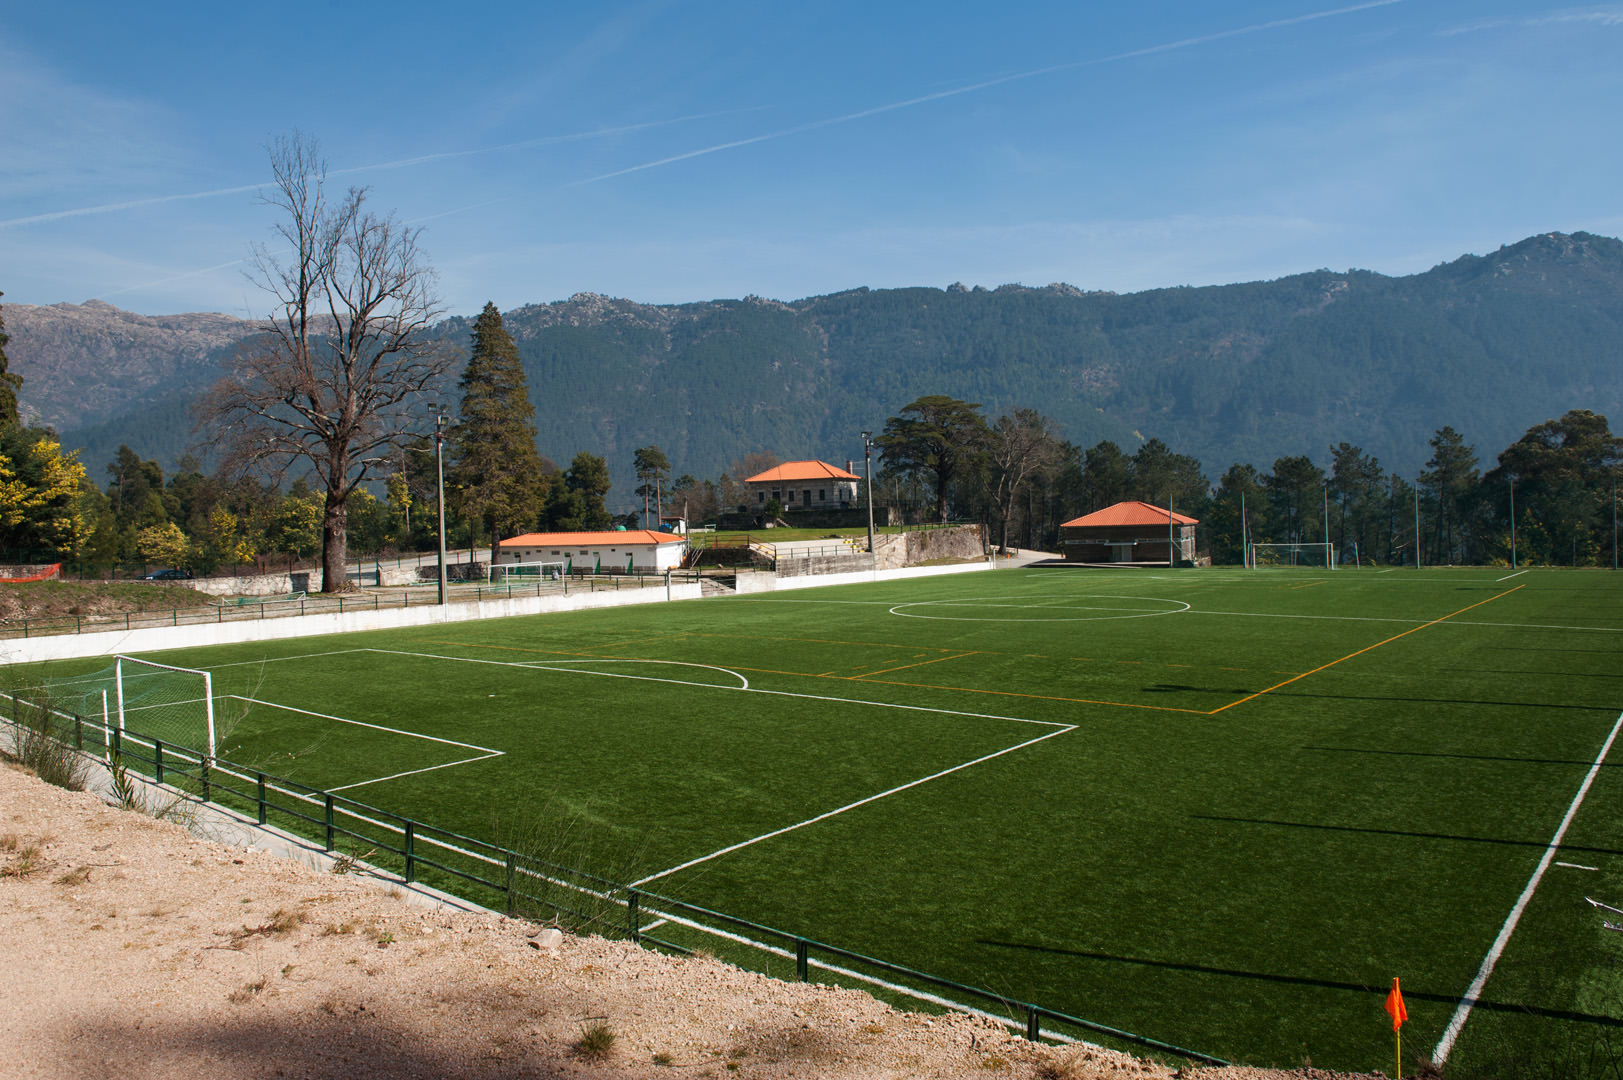 Grupo Desportivo do Gerês FOOTBALL FIELD  - Synthetic Grass Construction